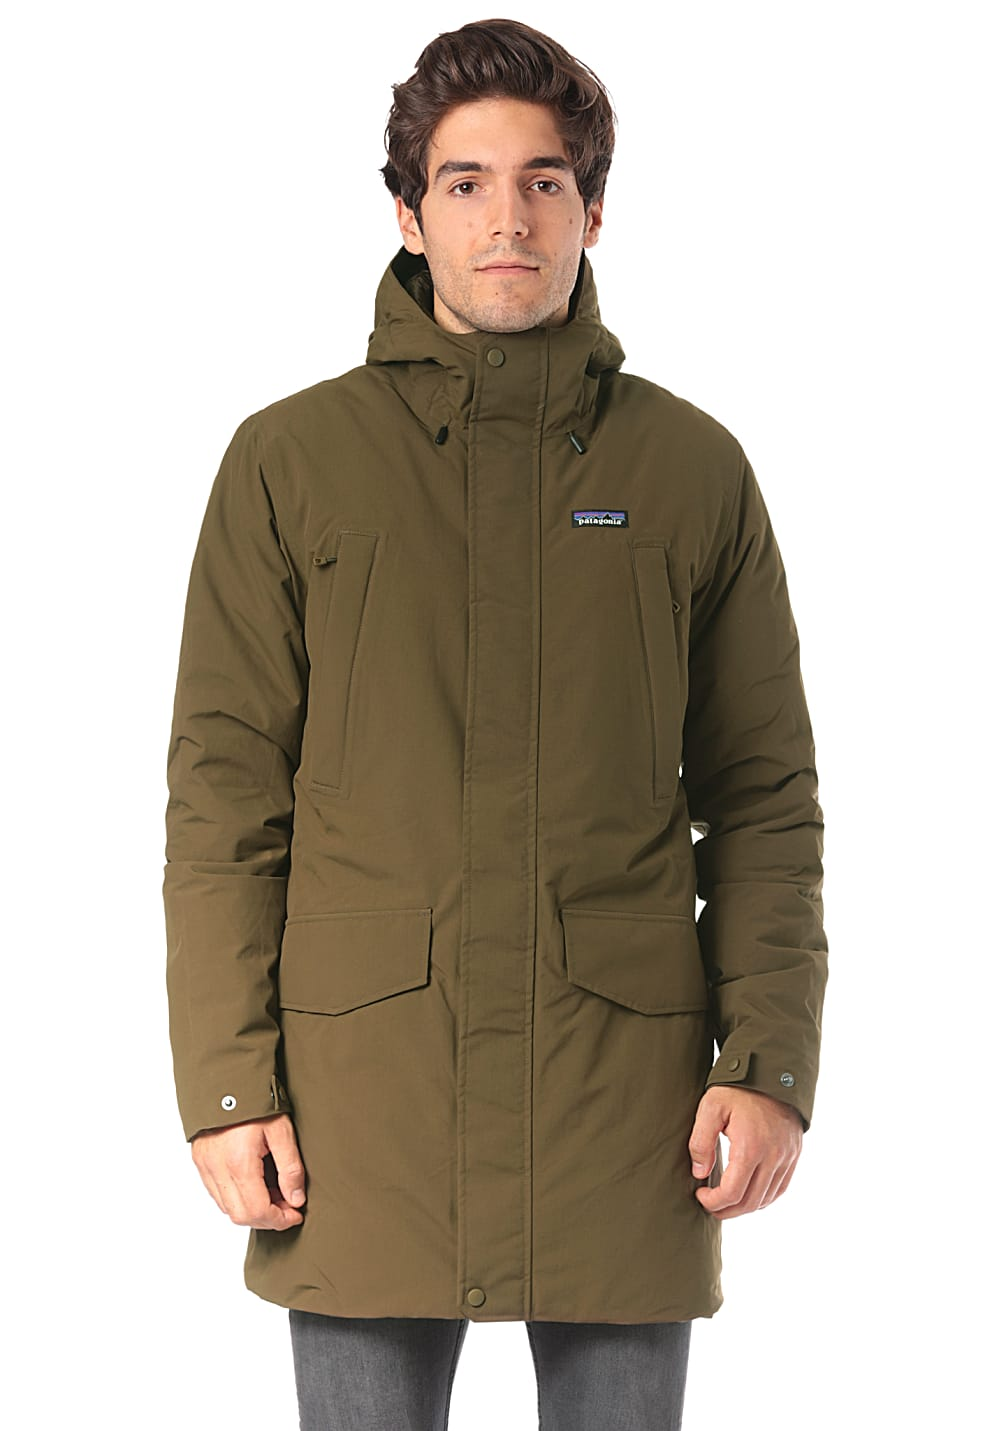 4e222aeb6a9 PATAGONIA City Storm - Outdoor Jacket for Men - Green - Planet Sports